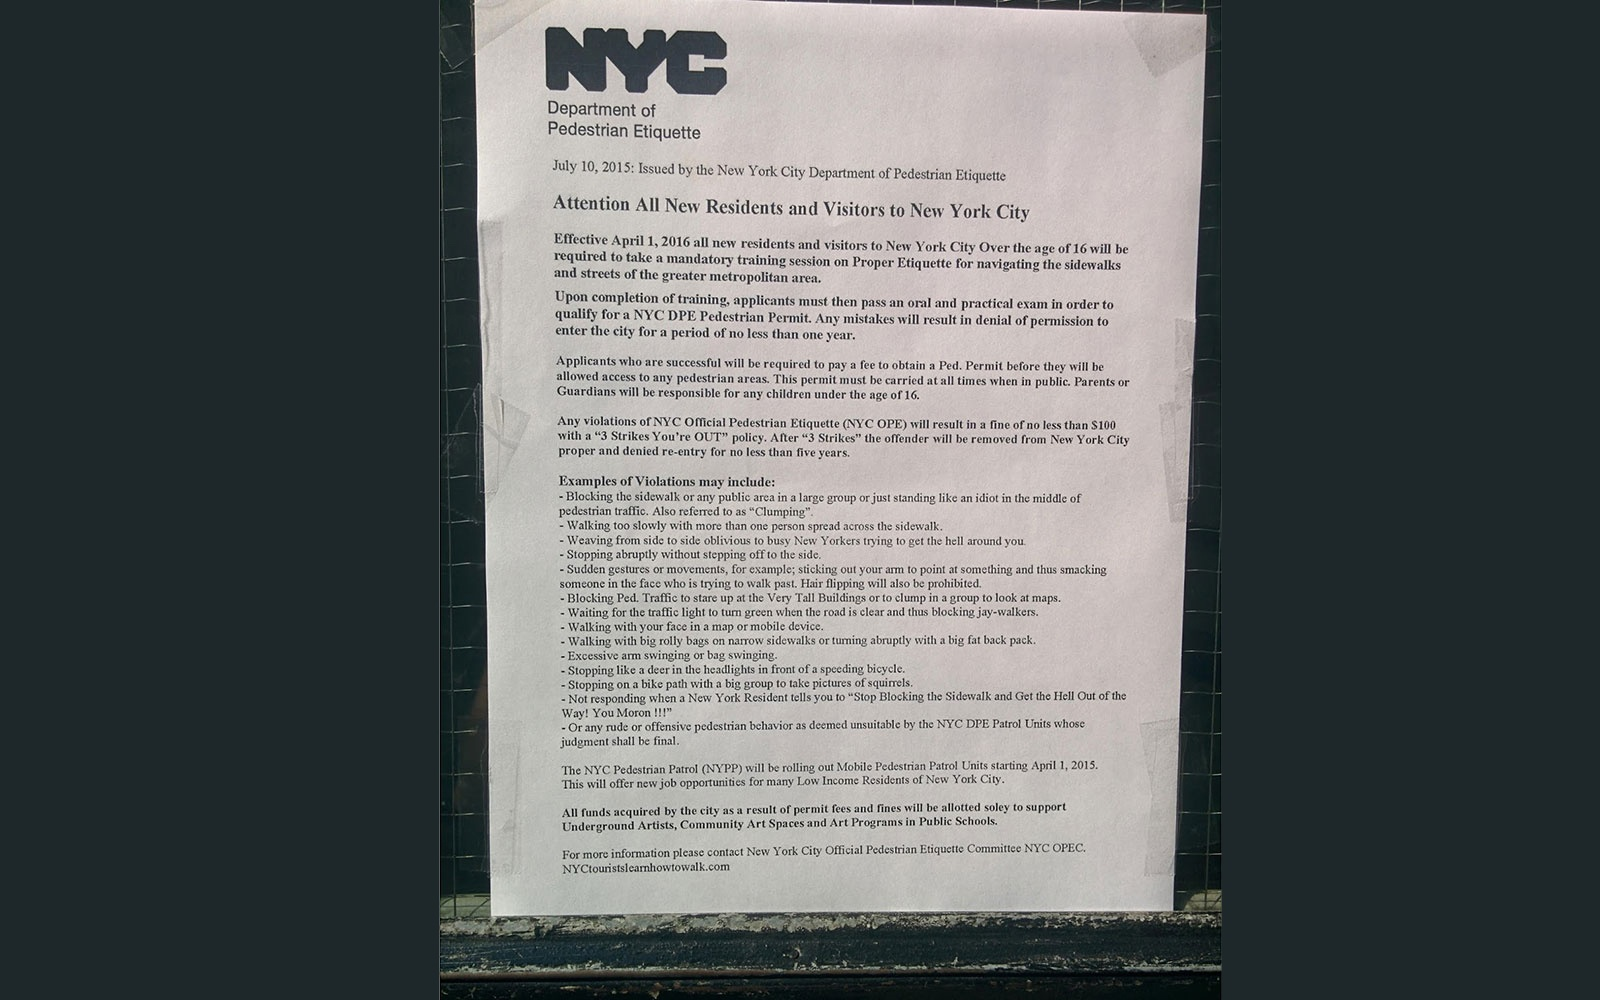 Walking Lessons for Tourists, From NYC's 'Department of Pedestrian Etiquette'